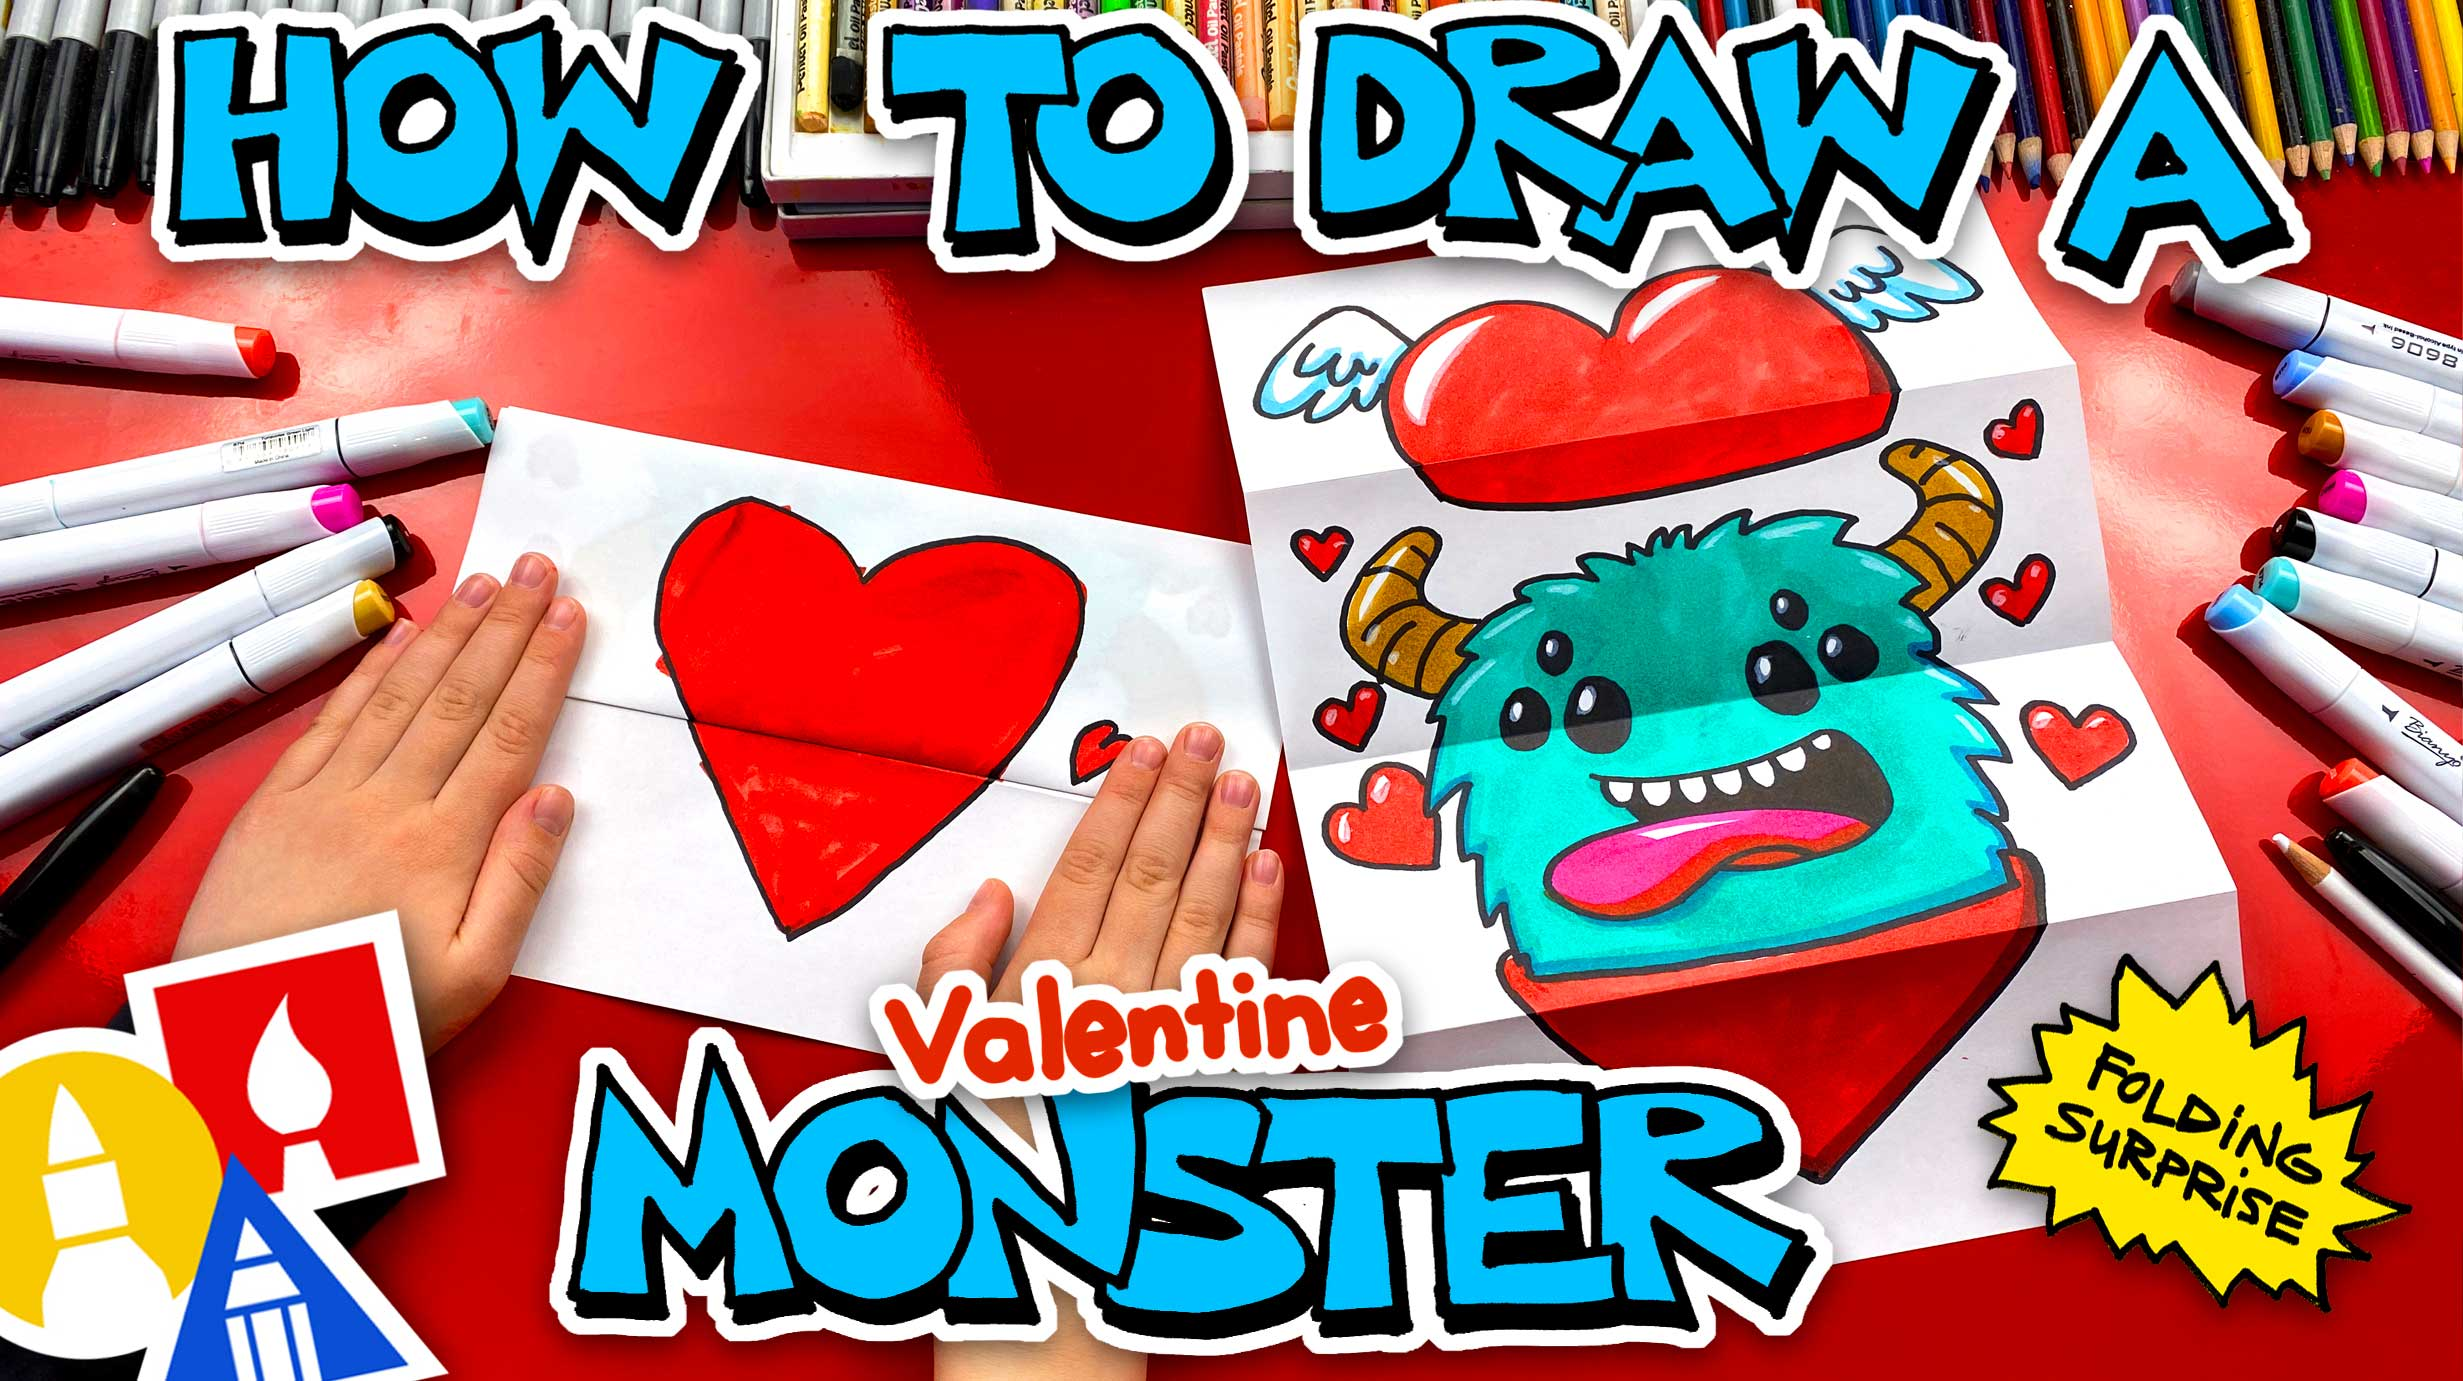 How To Draw A Valentine's Monster - Folding Surprise